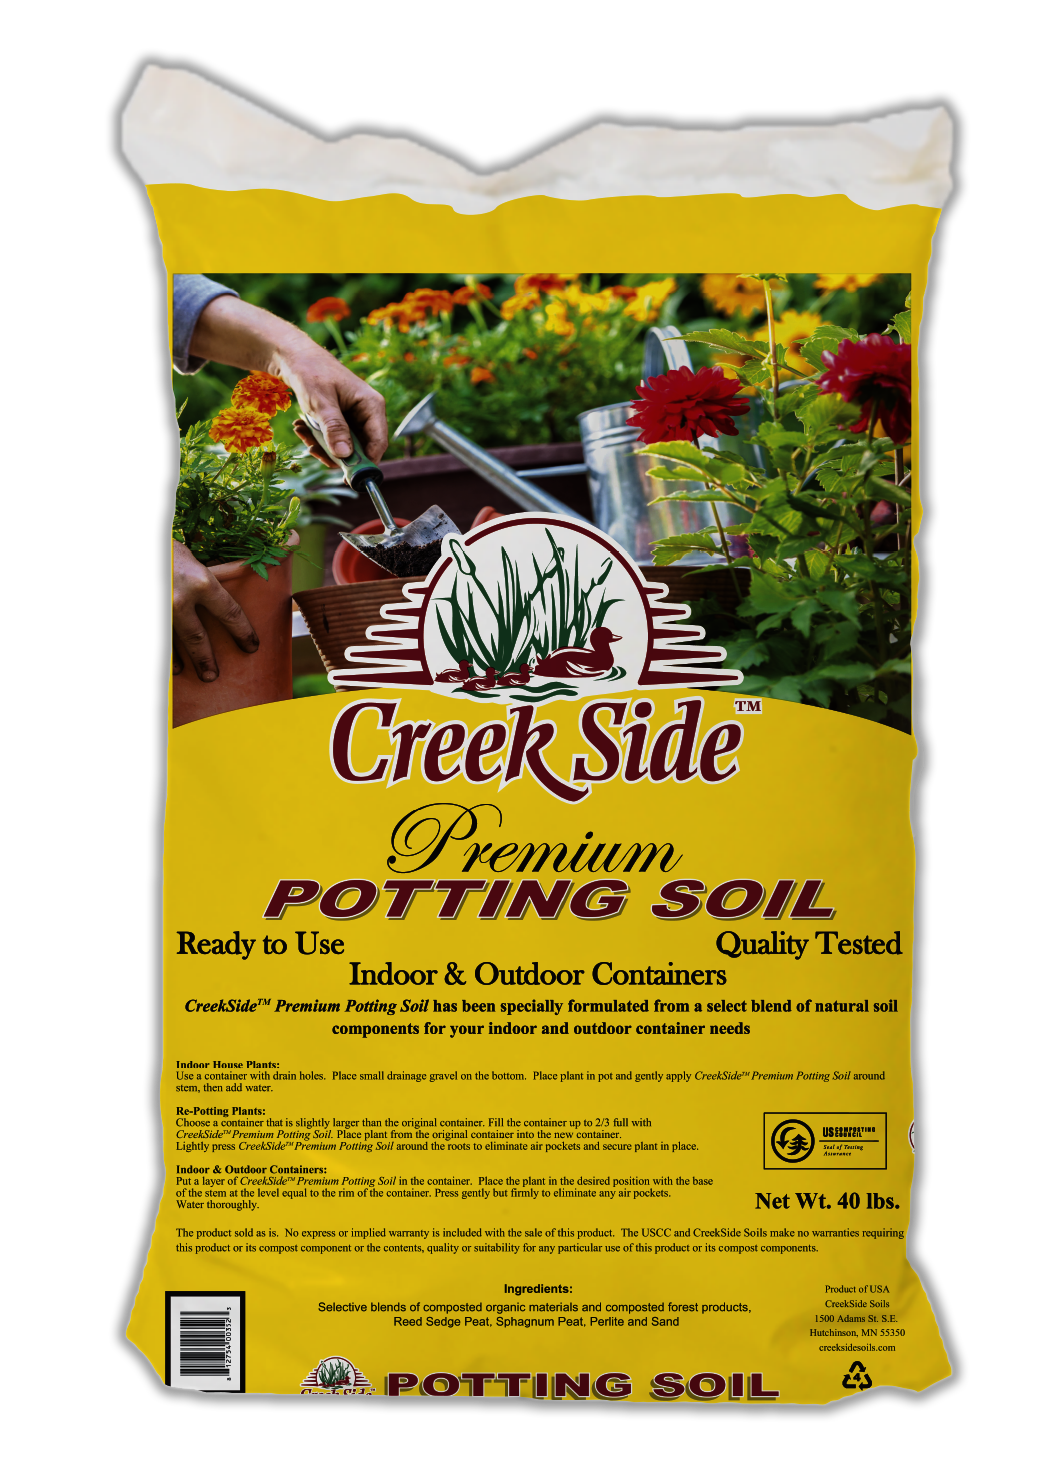 CreekSide bag of Premium Potting Soil